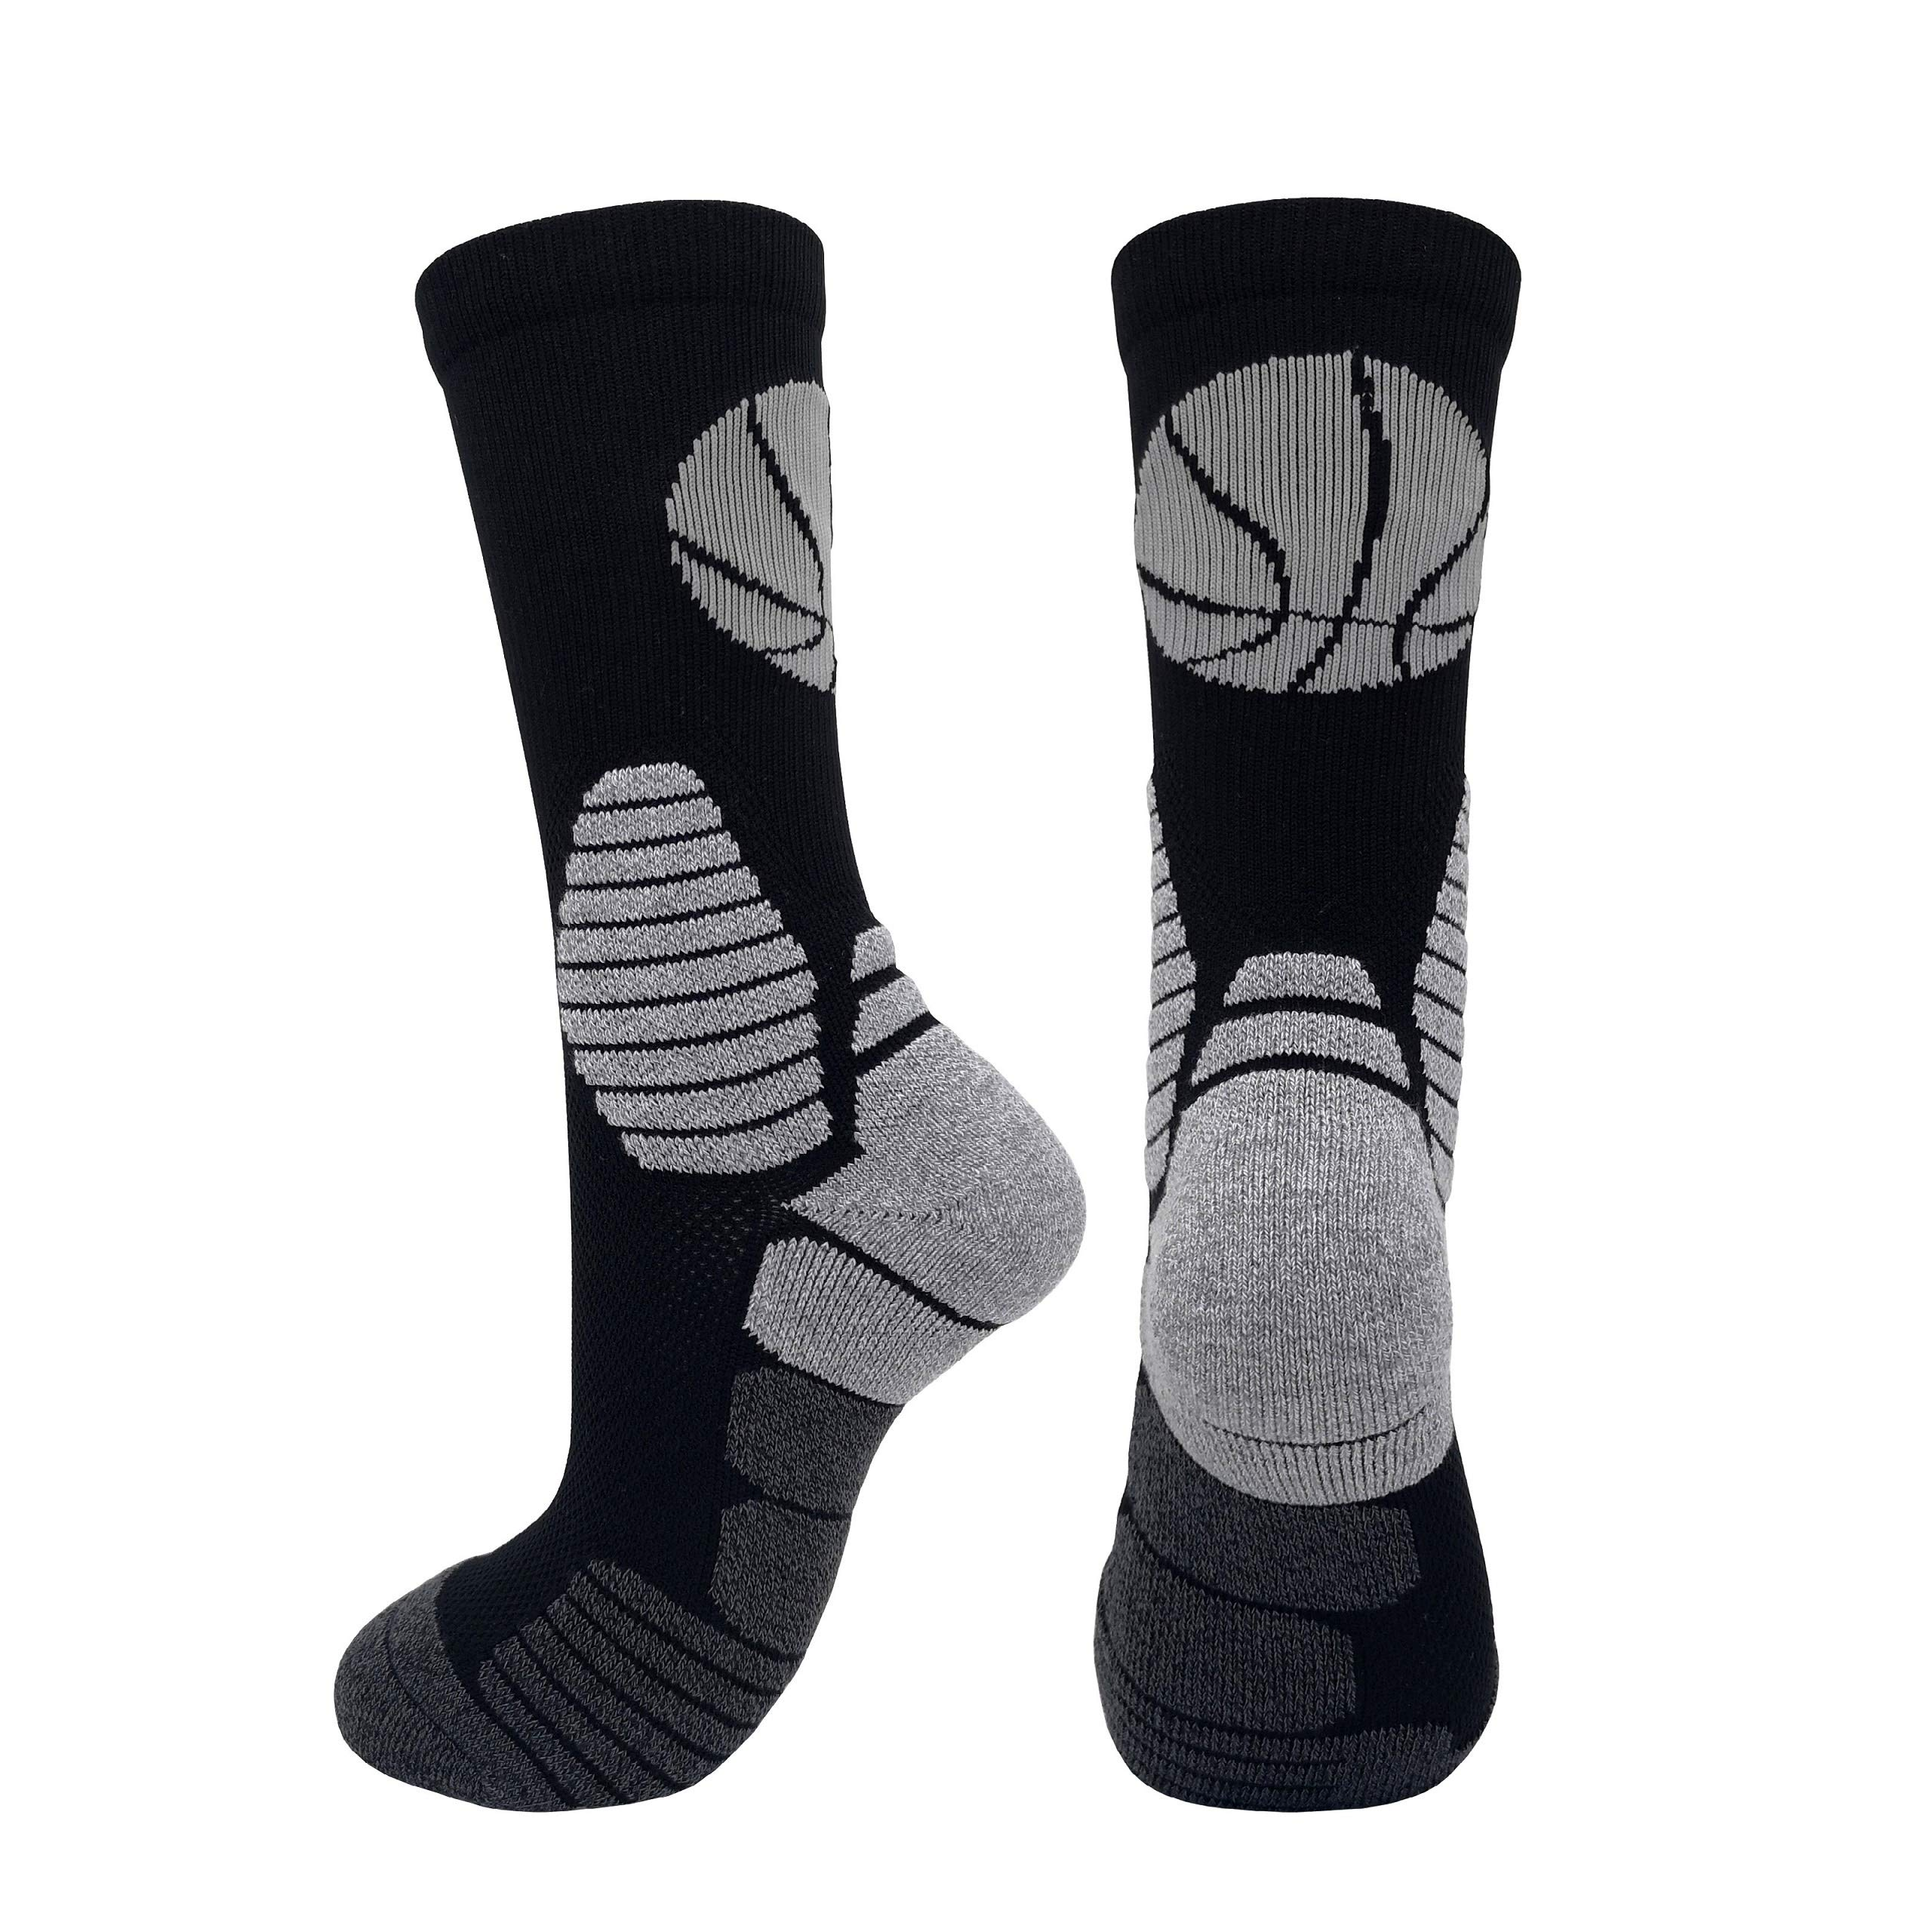 2 Pairs PK Elite Basketball Socks Dri-Fit Crew Sports Athletic Socks for Boy Girl Men Women (Black/Grey X 2PK, XL) by HIGHCAMP